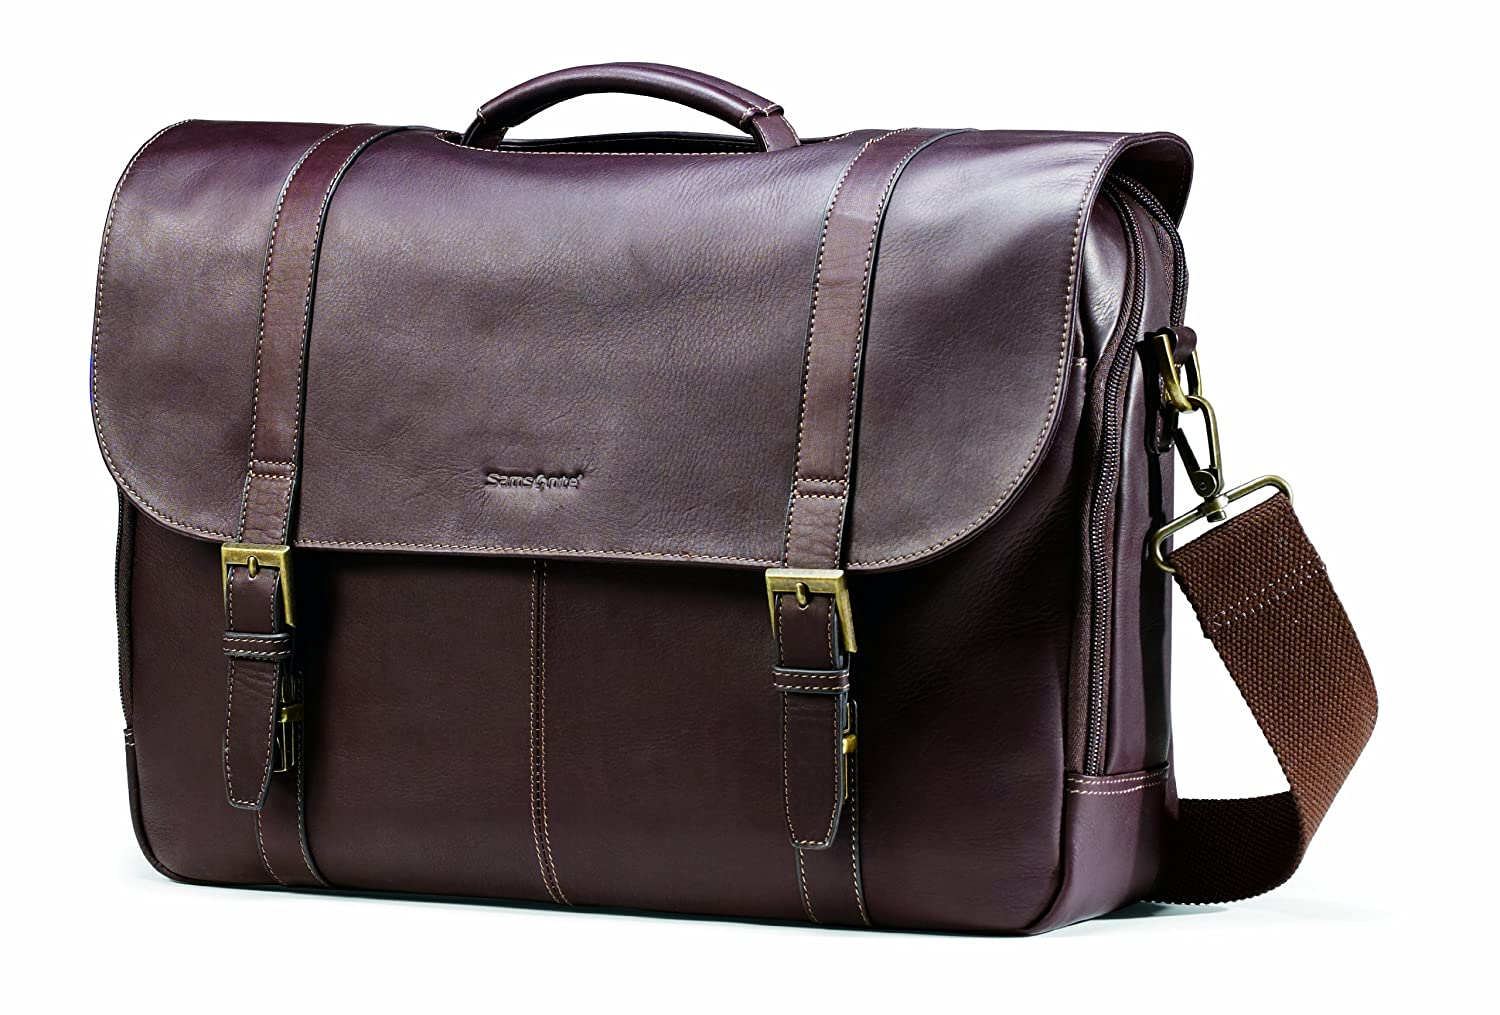 Samsonite Colombian Leather Flap-Over Messenger Bag, Brown, One Size Samsonite Corporation 45798